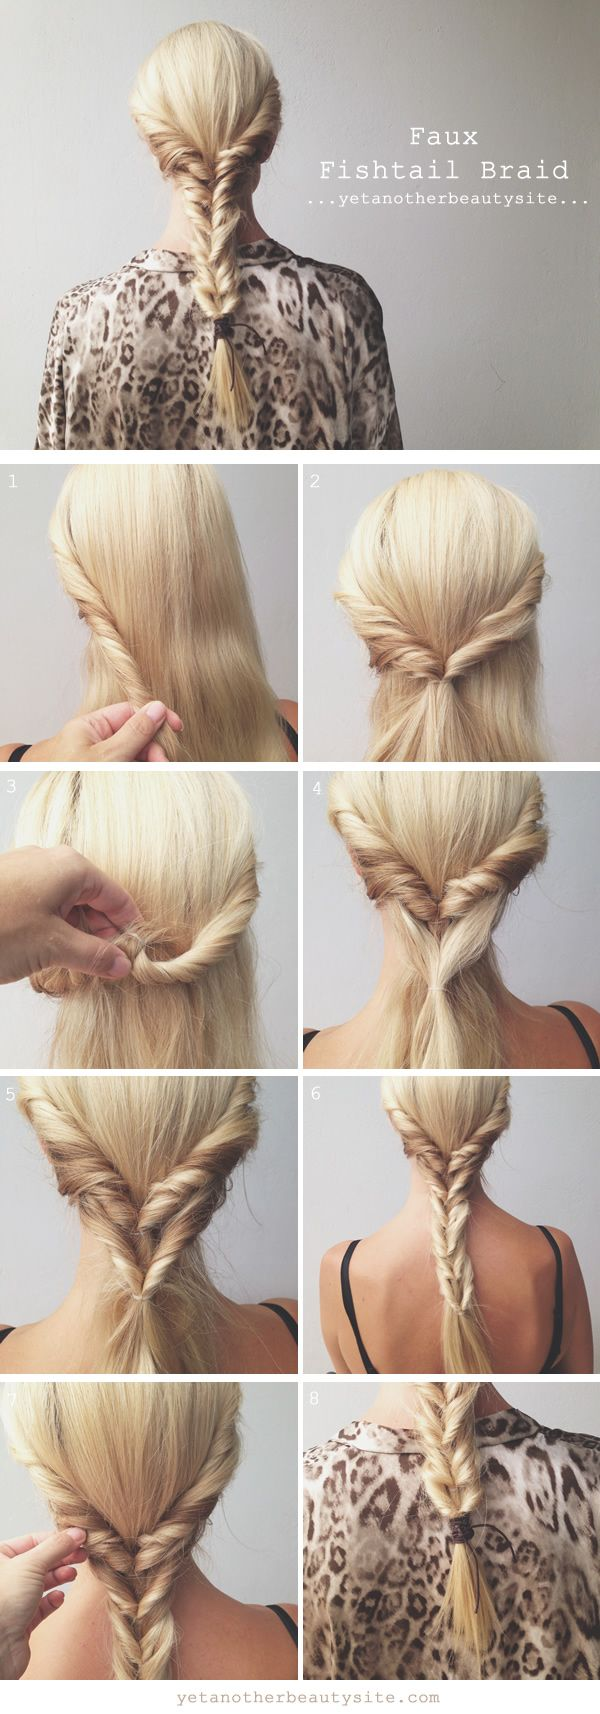 Whoa great twist on the fishtail! (Pun intended!)